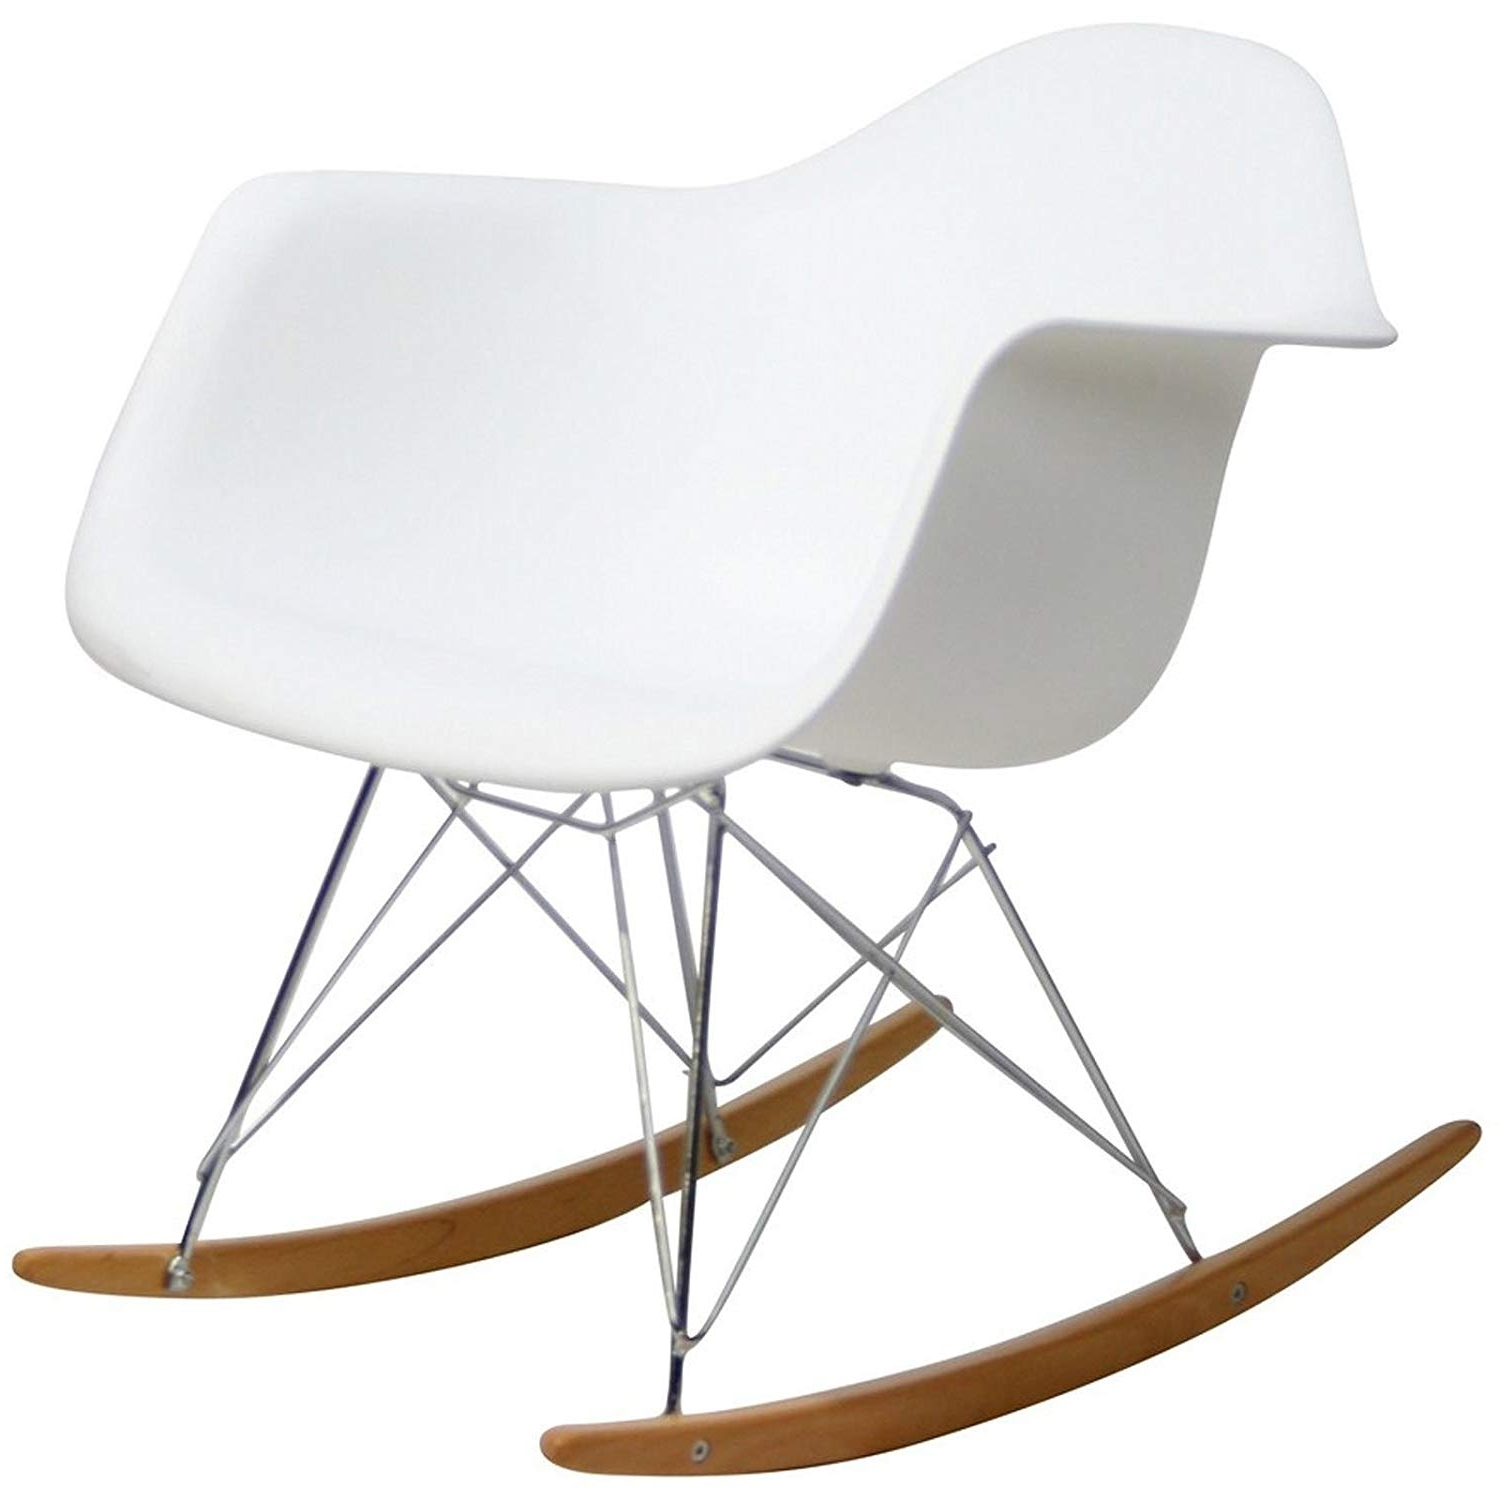 Amazon: Modway Eei 147 Whi Rocker Molded Plastic Accent Lounge Regarding Most Recently Released Amazon Rocking Chairs (View 7 of 15)